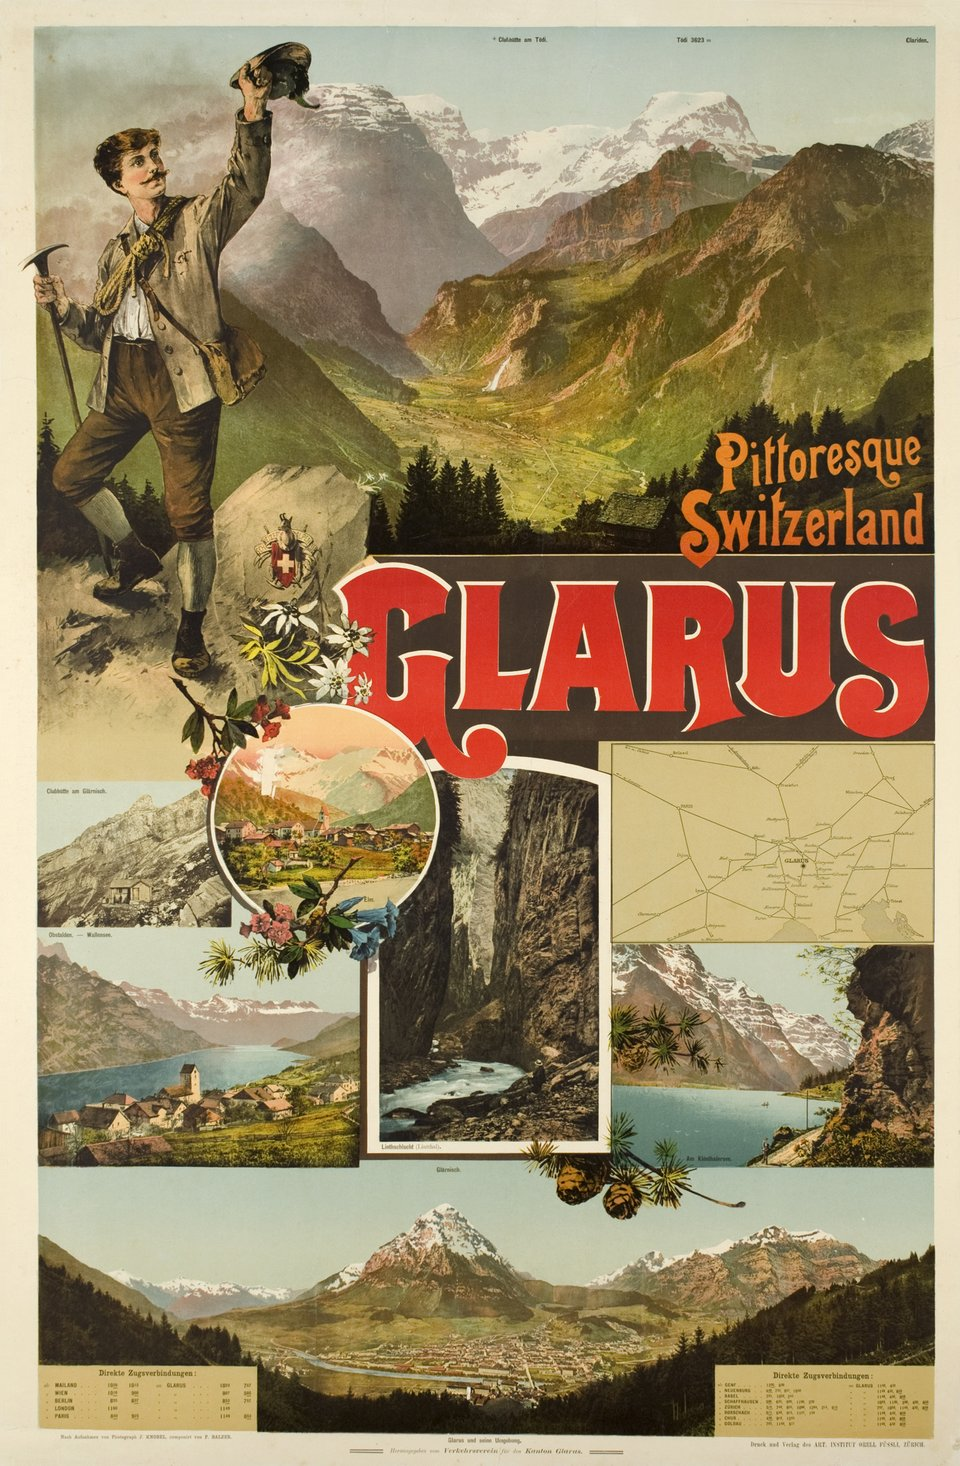 Pittoresque Switzerland, Glarus, Elm, Wallensee – Affiche ancienne – P. BALZER – 1895